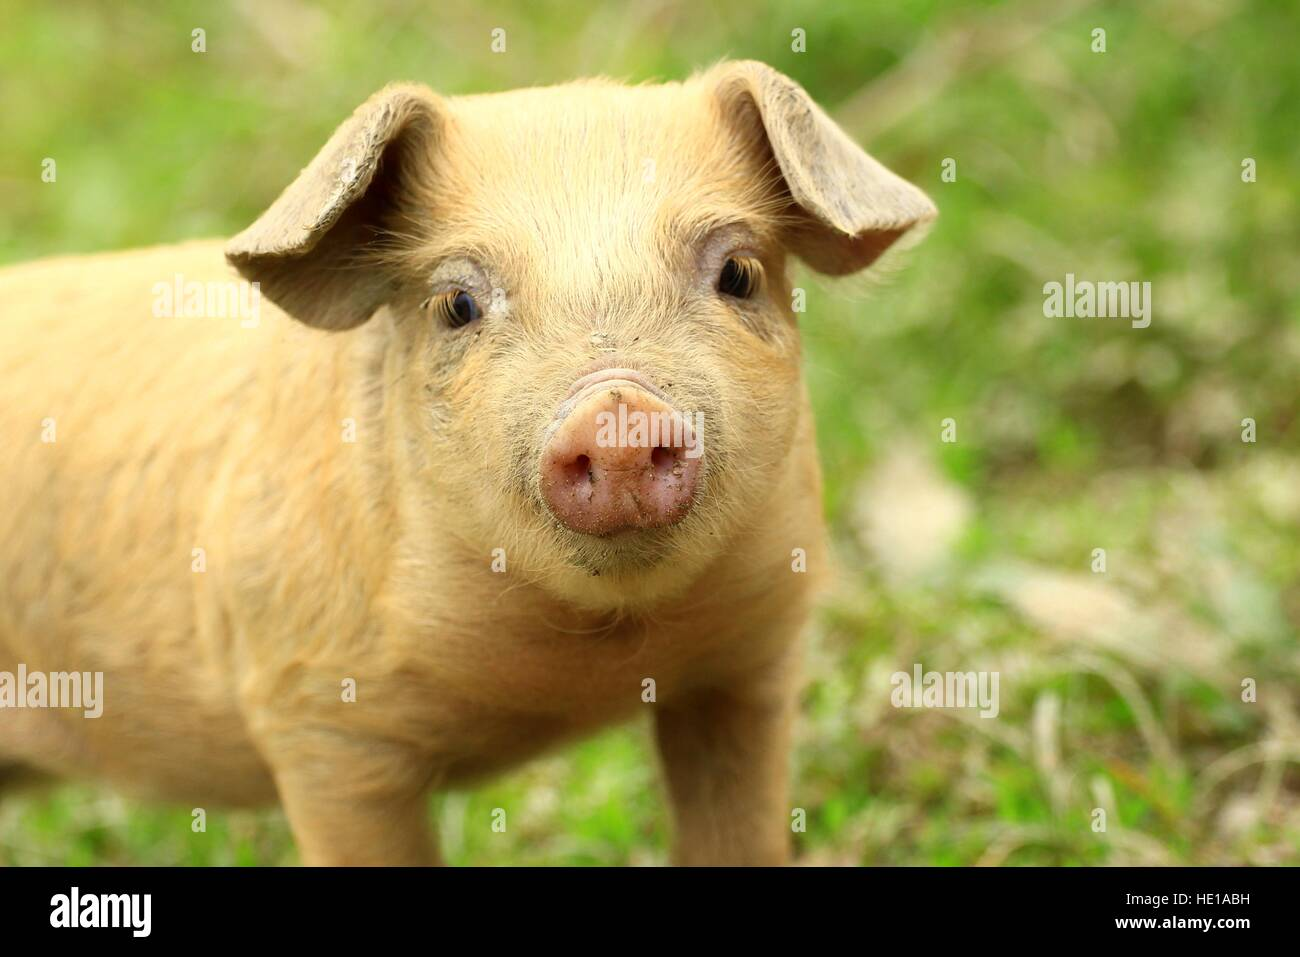 cute piglet face stock photo royalty free image 129107877 alamy